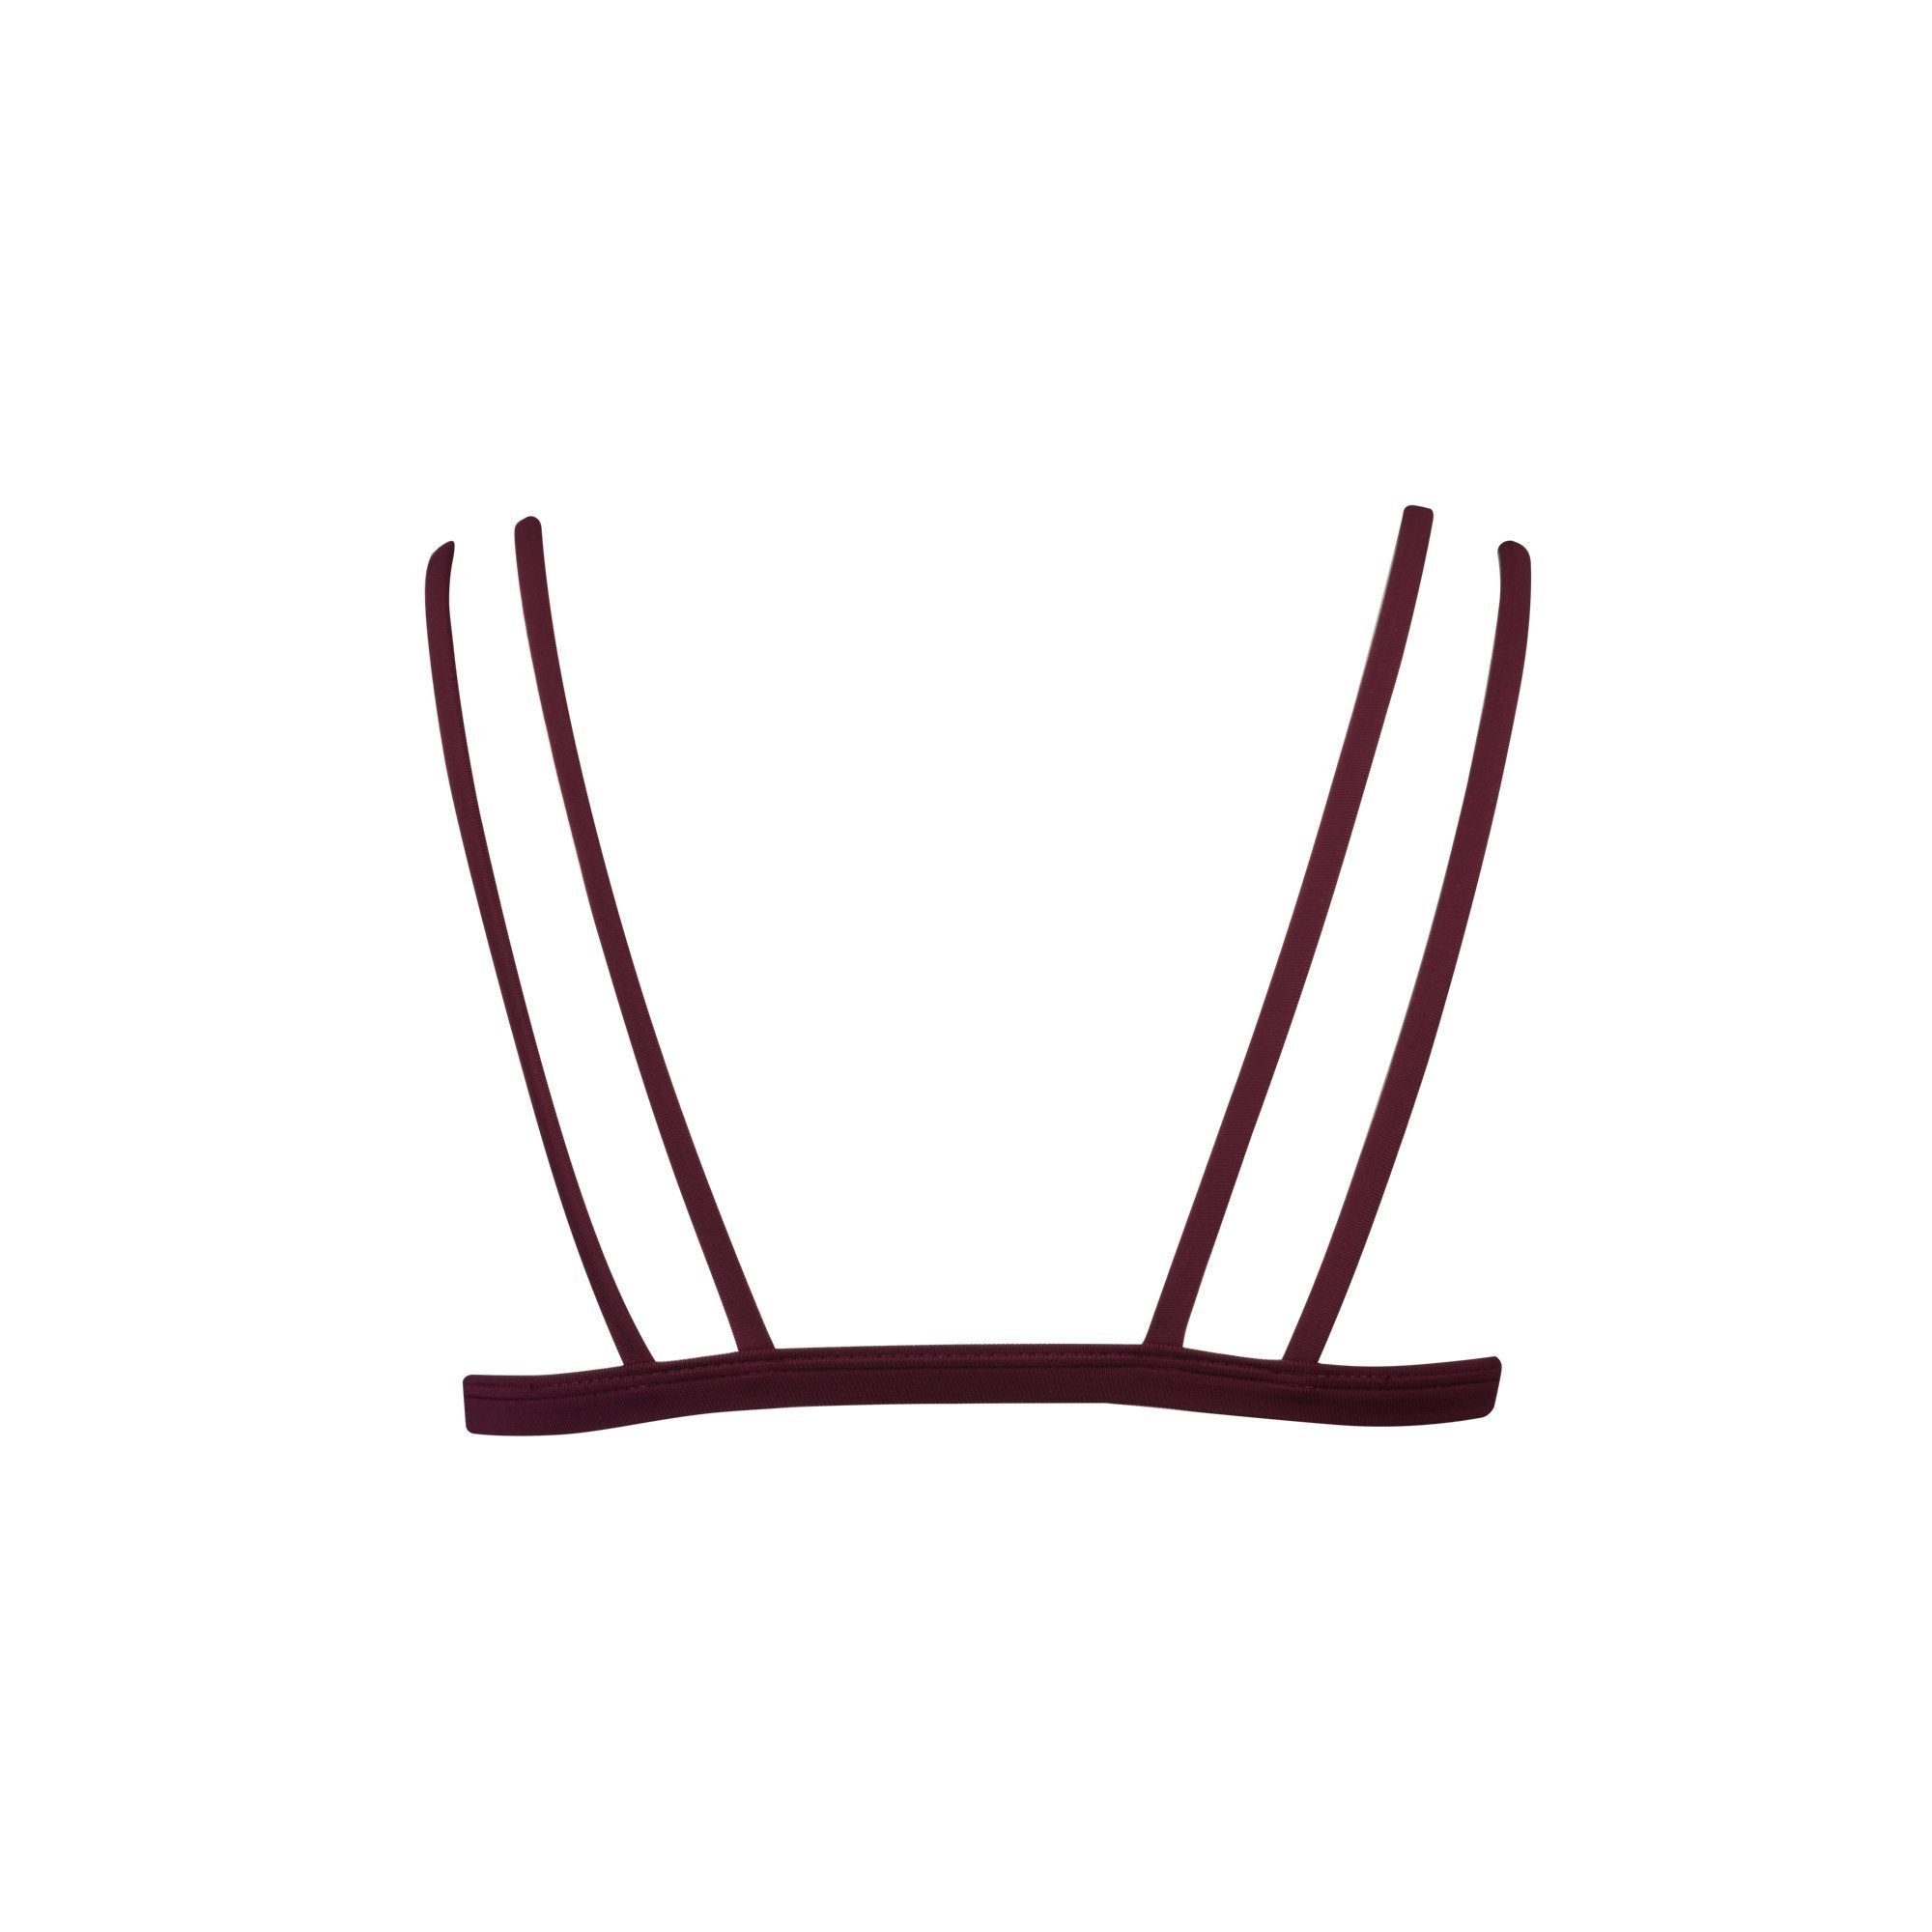 Caravel Bikini Top in Maroon | Beachwear | Tuhkana Swimwear | [product_tag] - Fair Bazaar Ethical Living